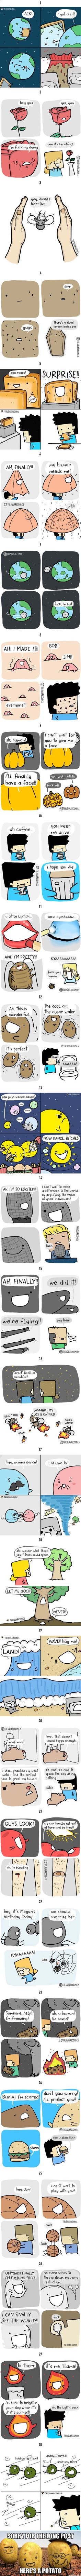 Humor Discover If things could talk Omg this is too funny. Imagine if it was real haha Cute Comics Funny Comics Dark Humor Comics Humor Dark Dark Jokes Funny Cartoons Funny Cute The Funny Funny Texts Stupid Funny, Funny Cute, Haha Funny, Really Funny, Funny Texts, Funny Jokes, Hilarious, Silly Jokes, Funny Stuff